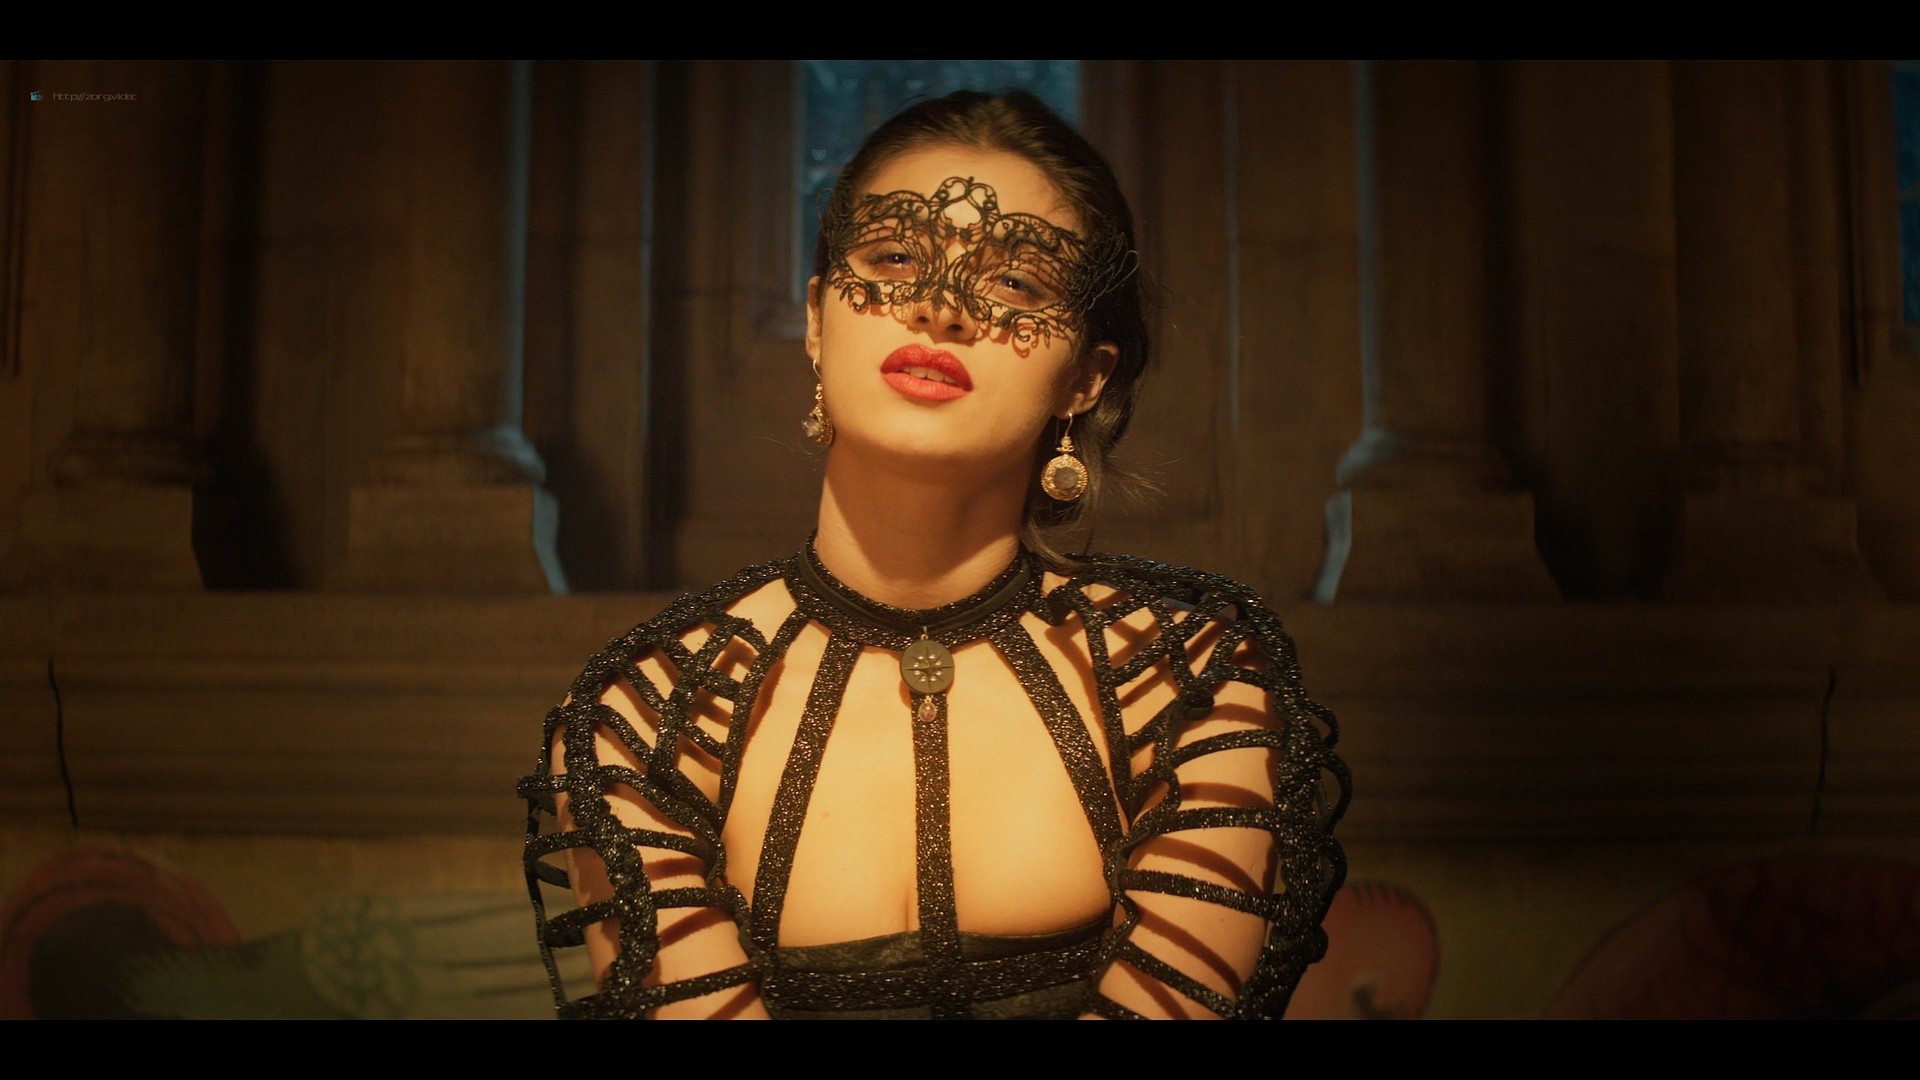 Anya Chalotra nude others nude too - The Witcher (2019) s1e5-6 HD 1080p WEB (17)